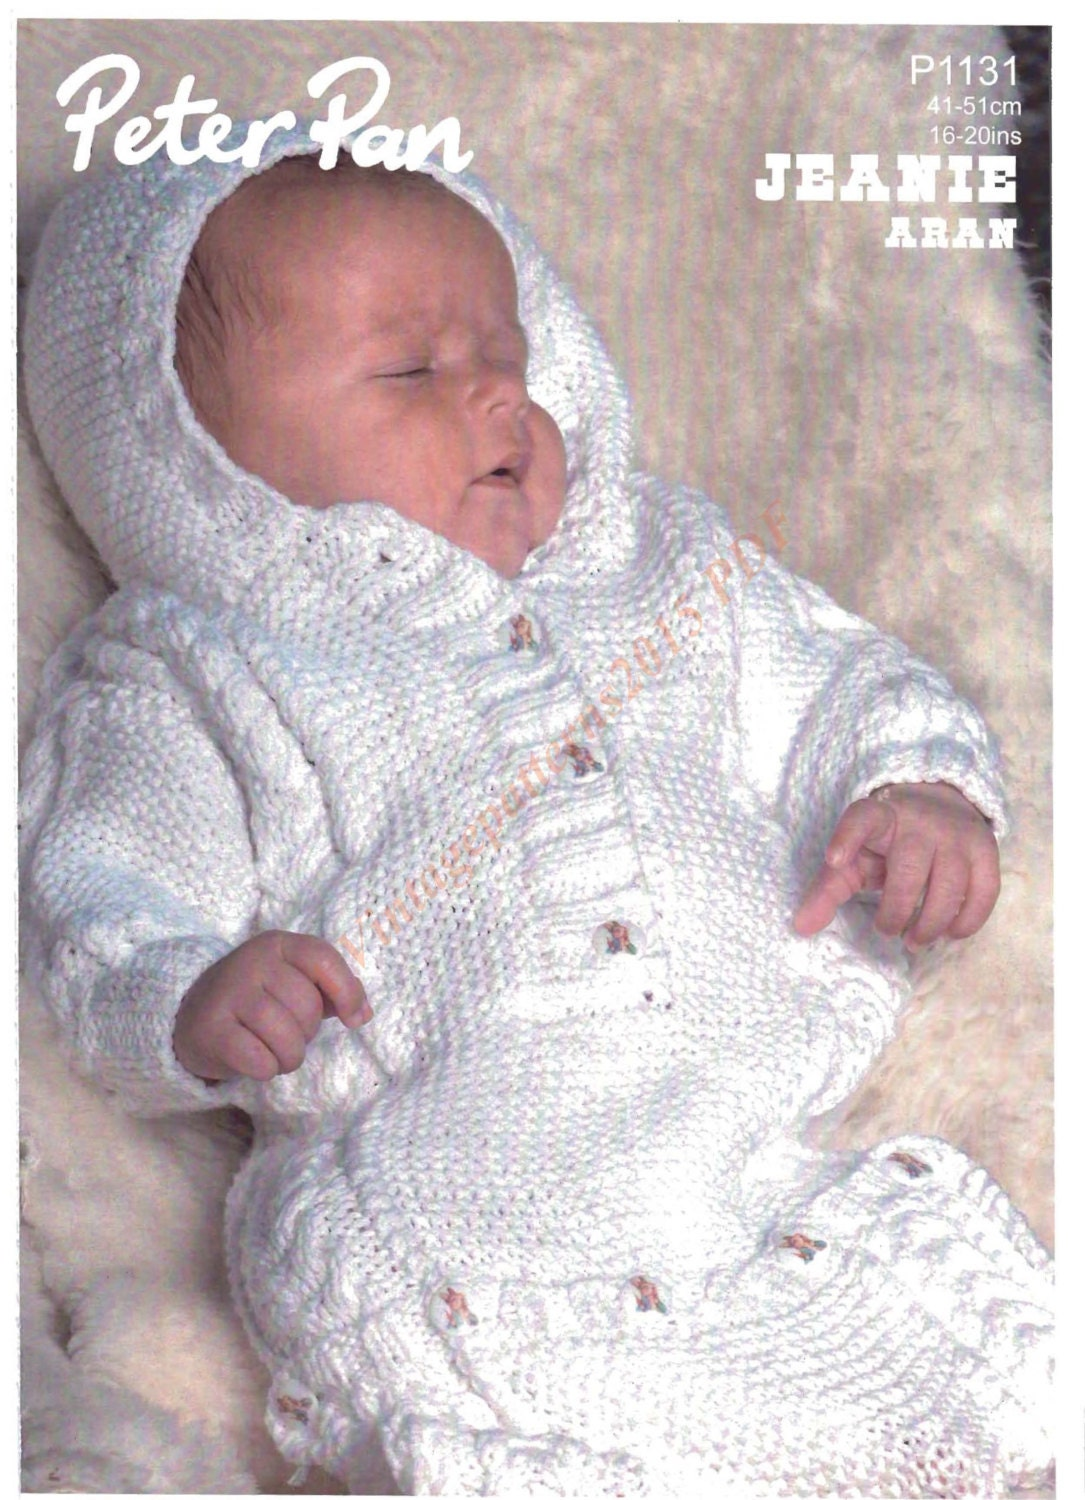 Knitting Pattern Sleeping Bag Baby : Baby Sleeping Bag Knitting Pattern Aran by VintagePatterns2015